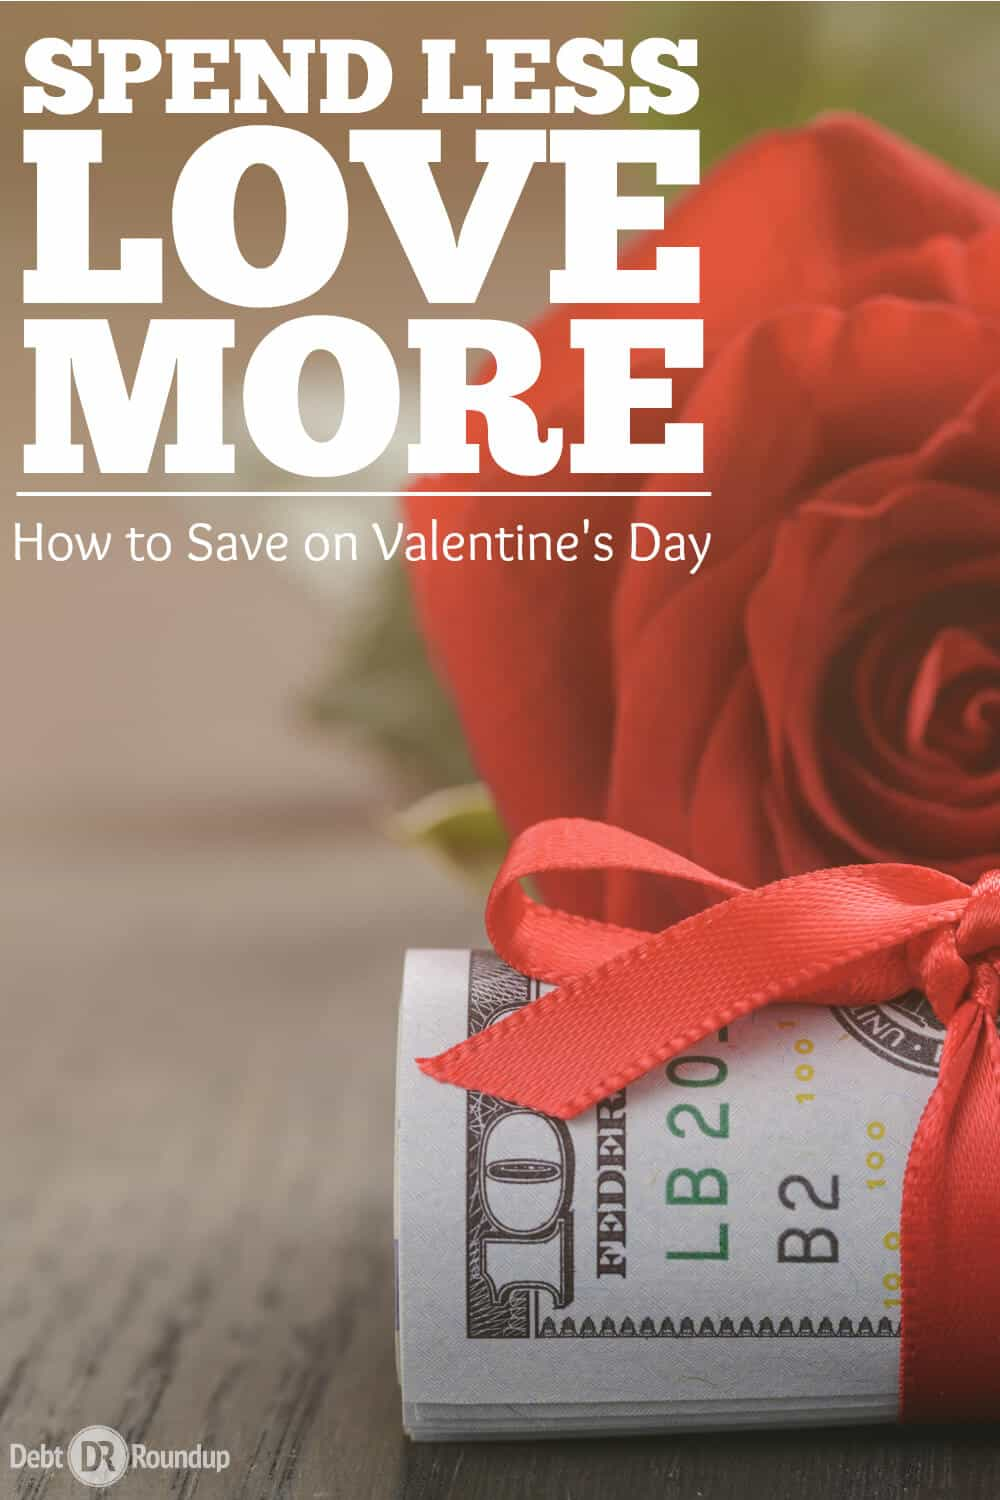 How to spend less and love more on Valentine's Day